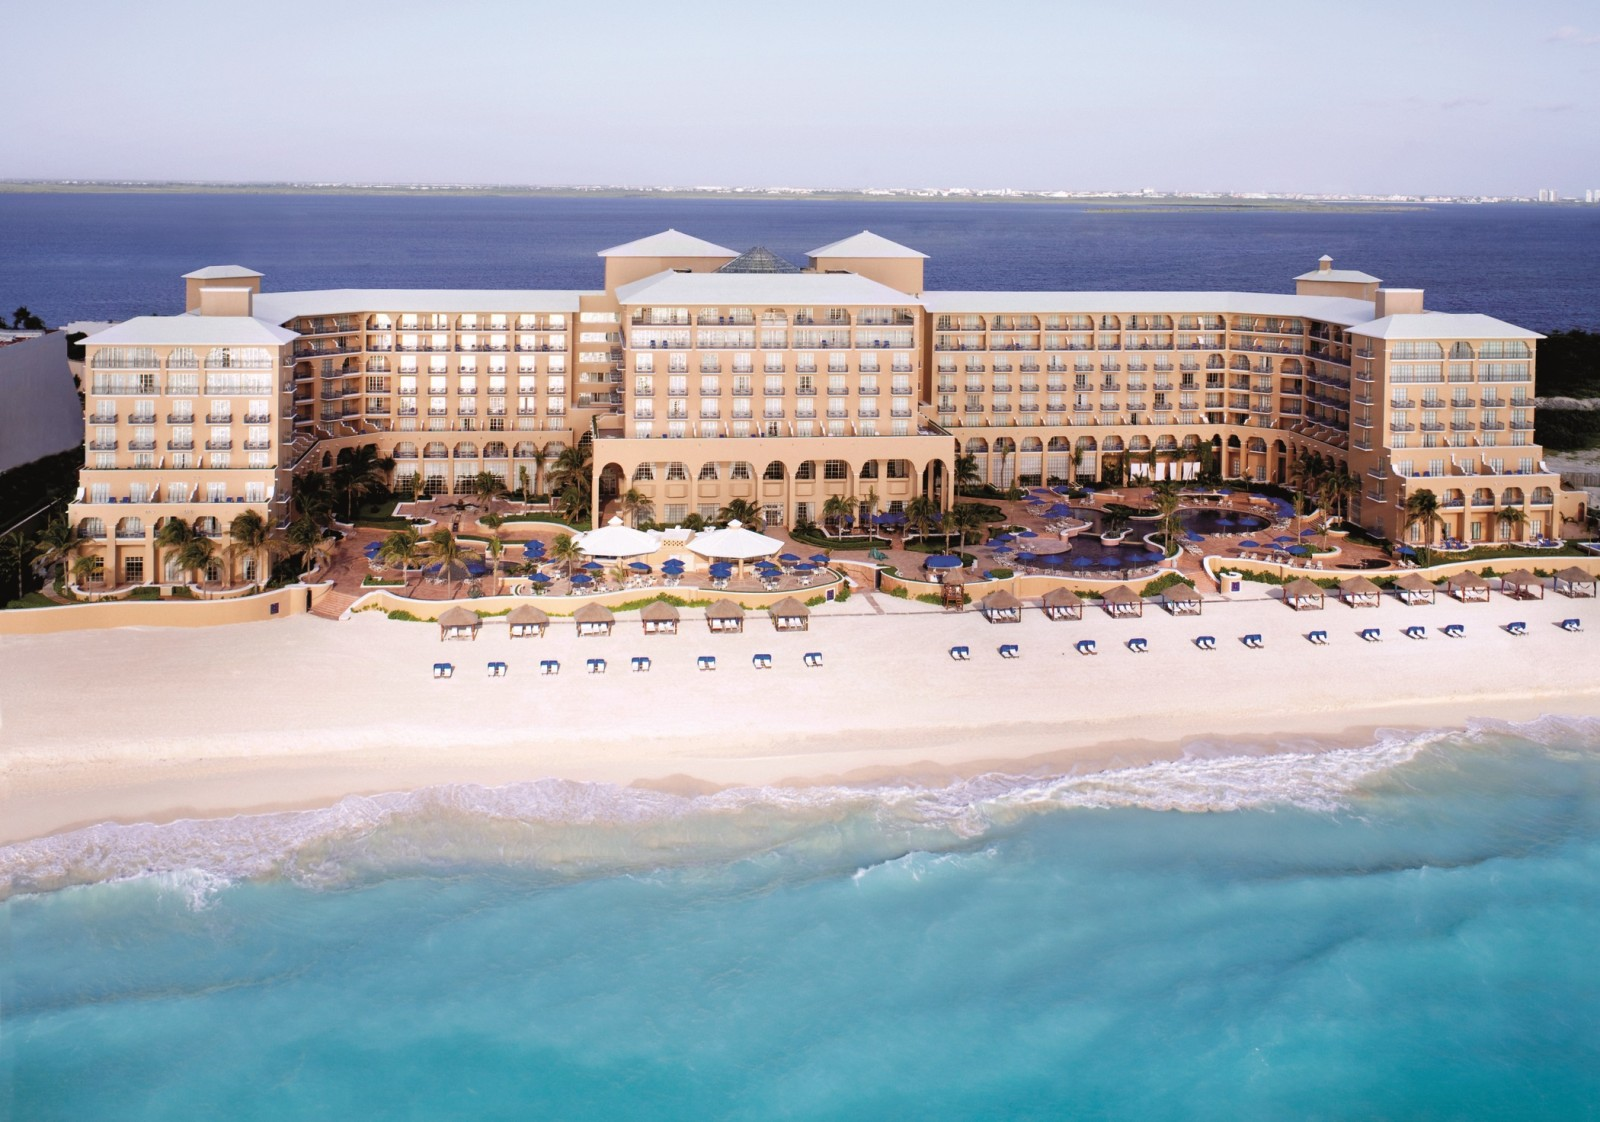 The Ritz Carlton Cancun image